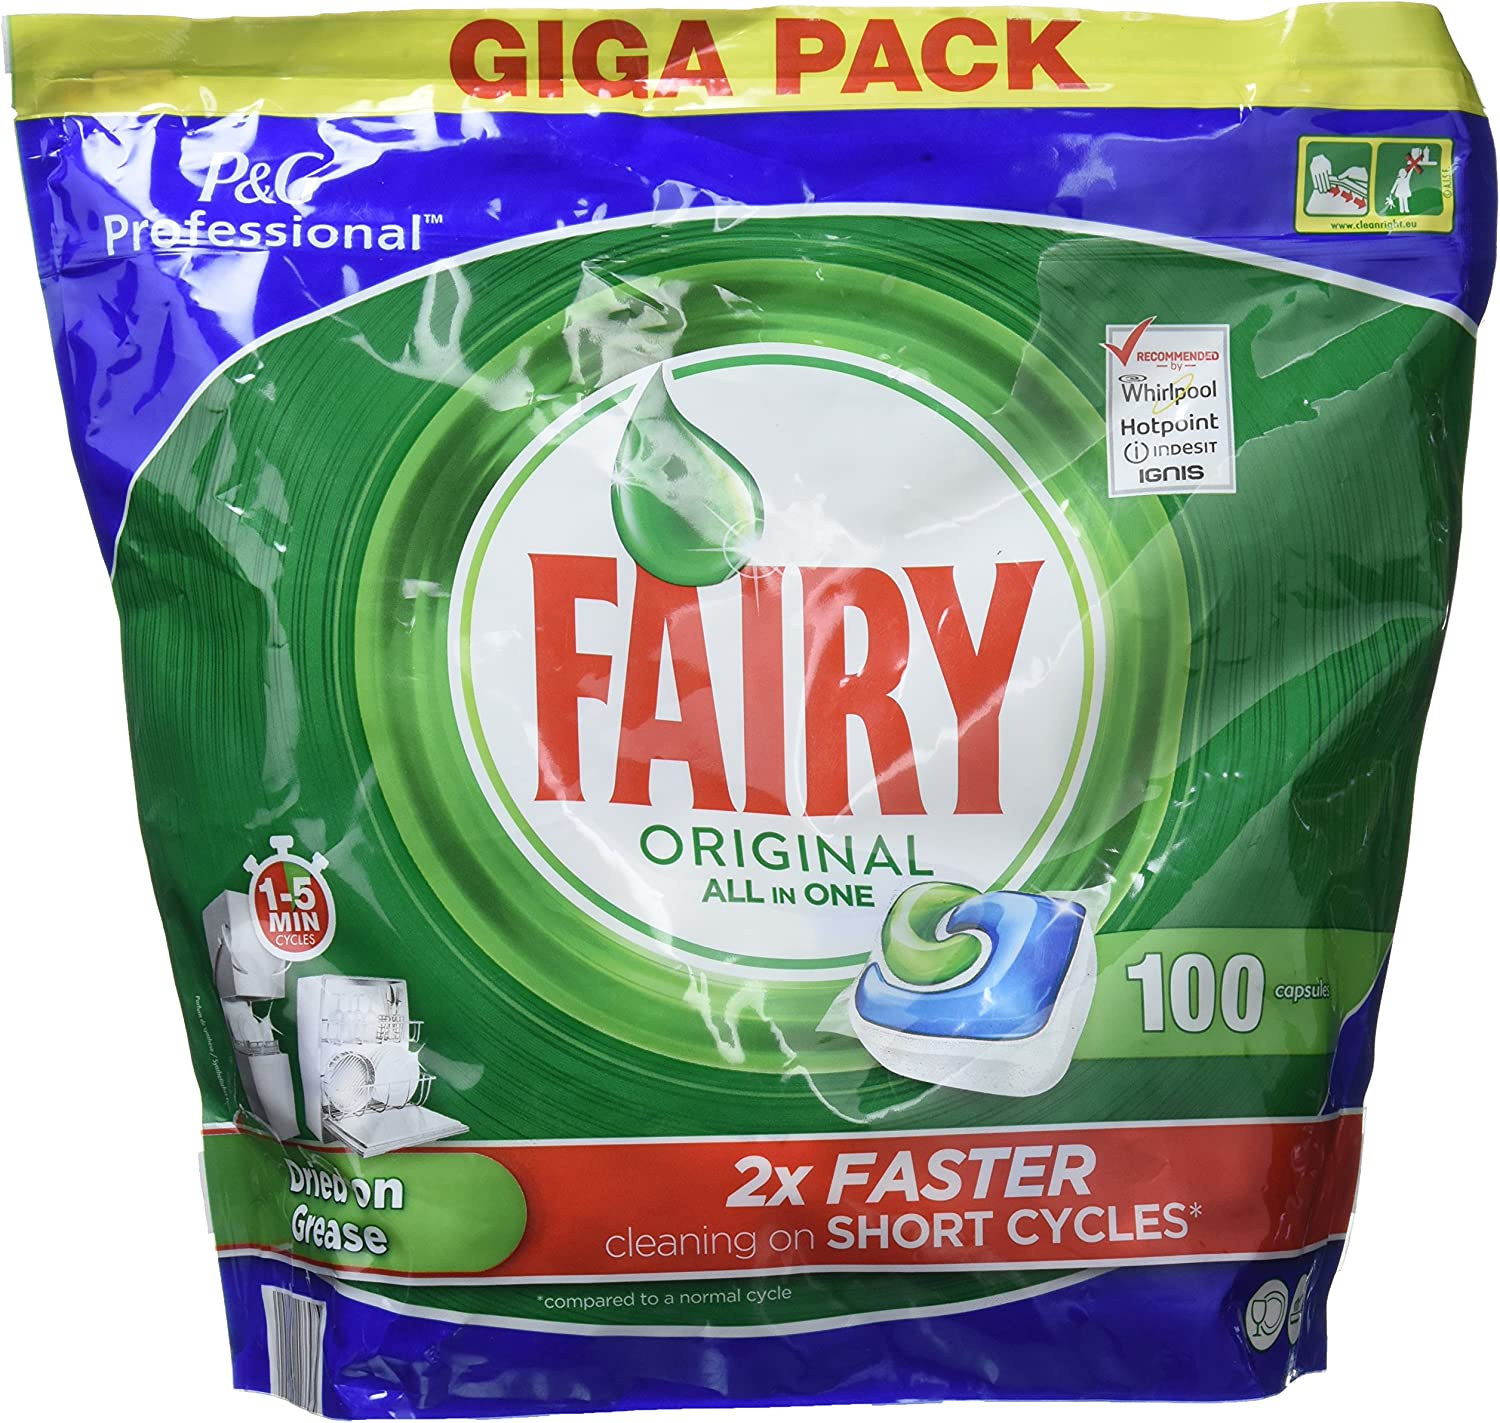 100 FAIRY ORIGINAL ALL in 1 DISHWASHER CAPSULES